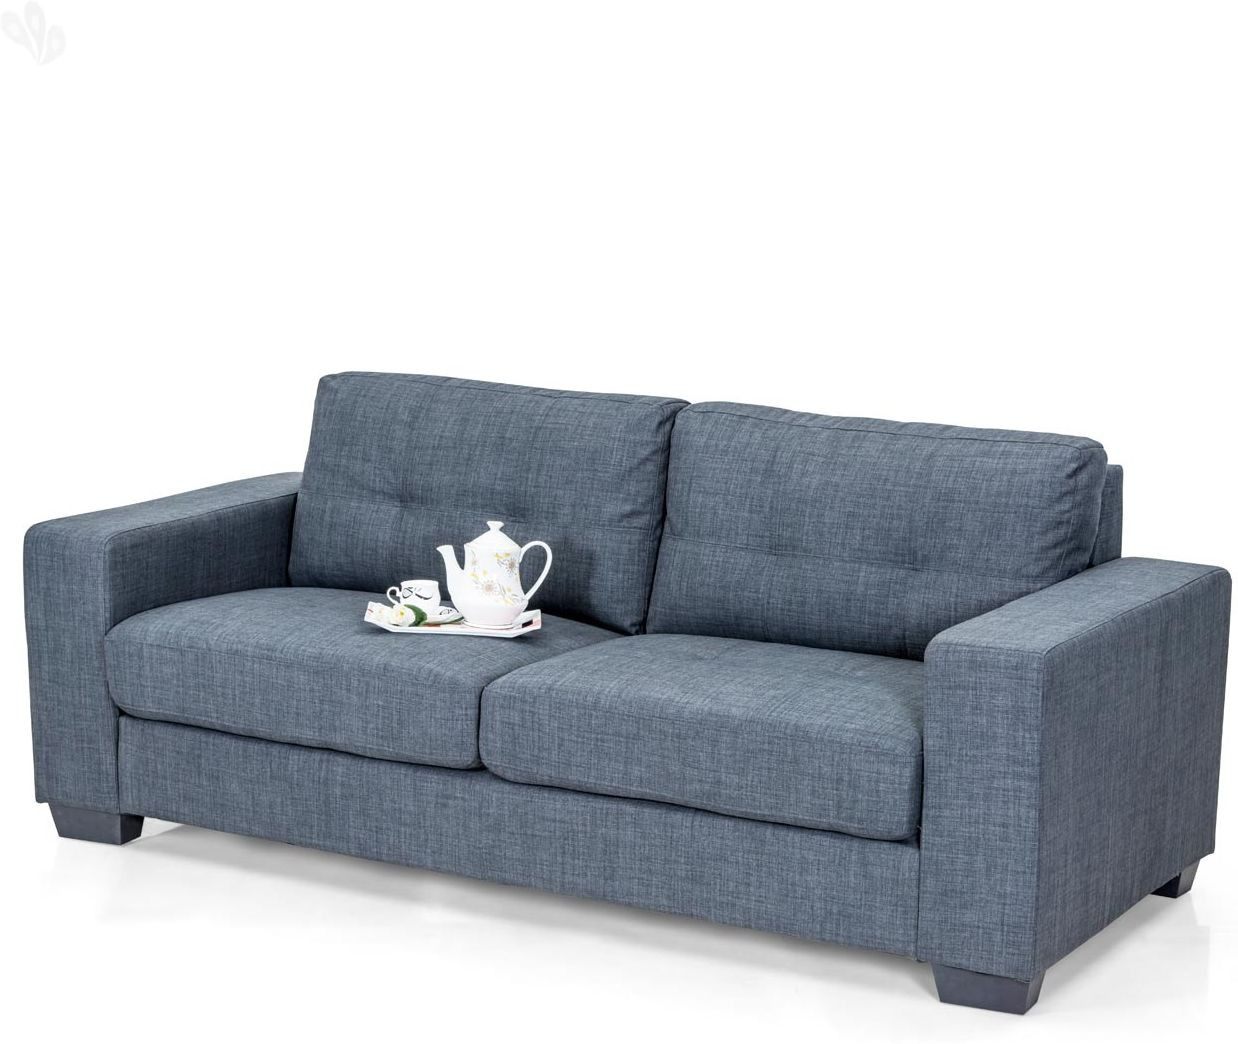 Sofa Set Price Rate Royal Oak Fabric 3 Seater Sofa Grey Furniture Price In